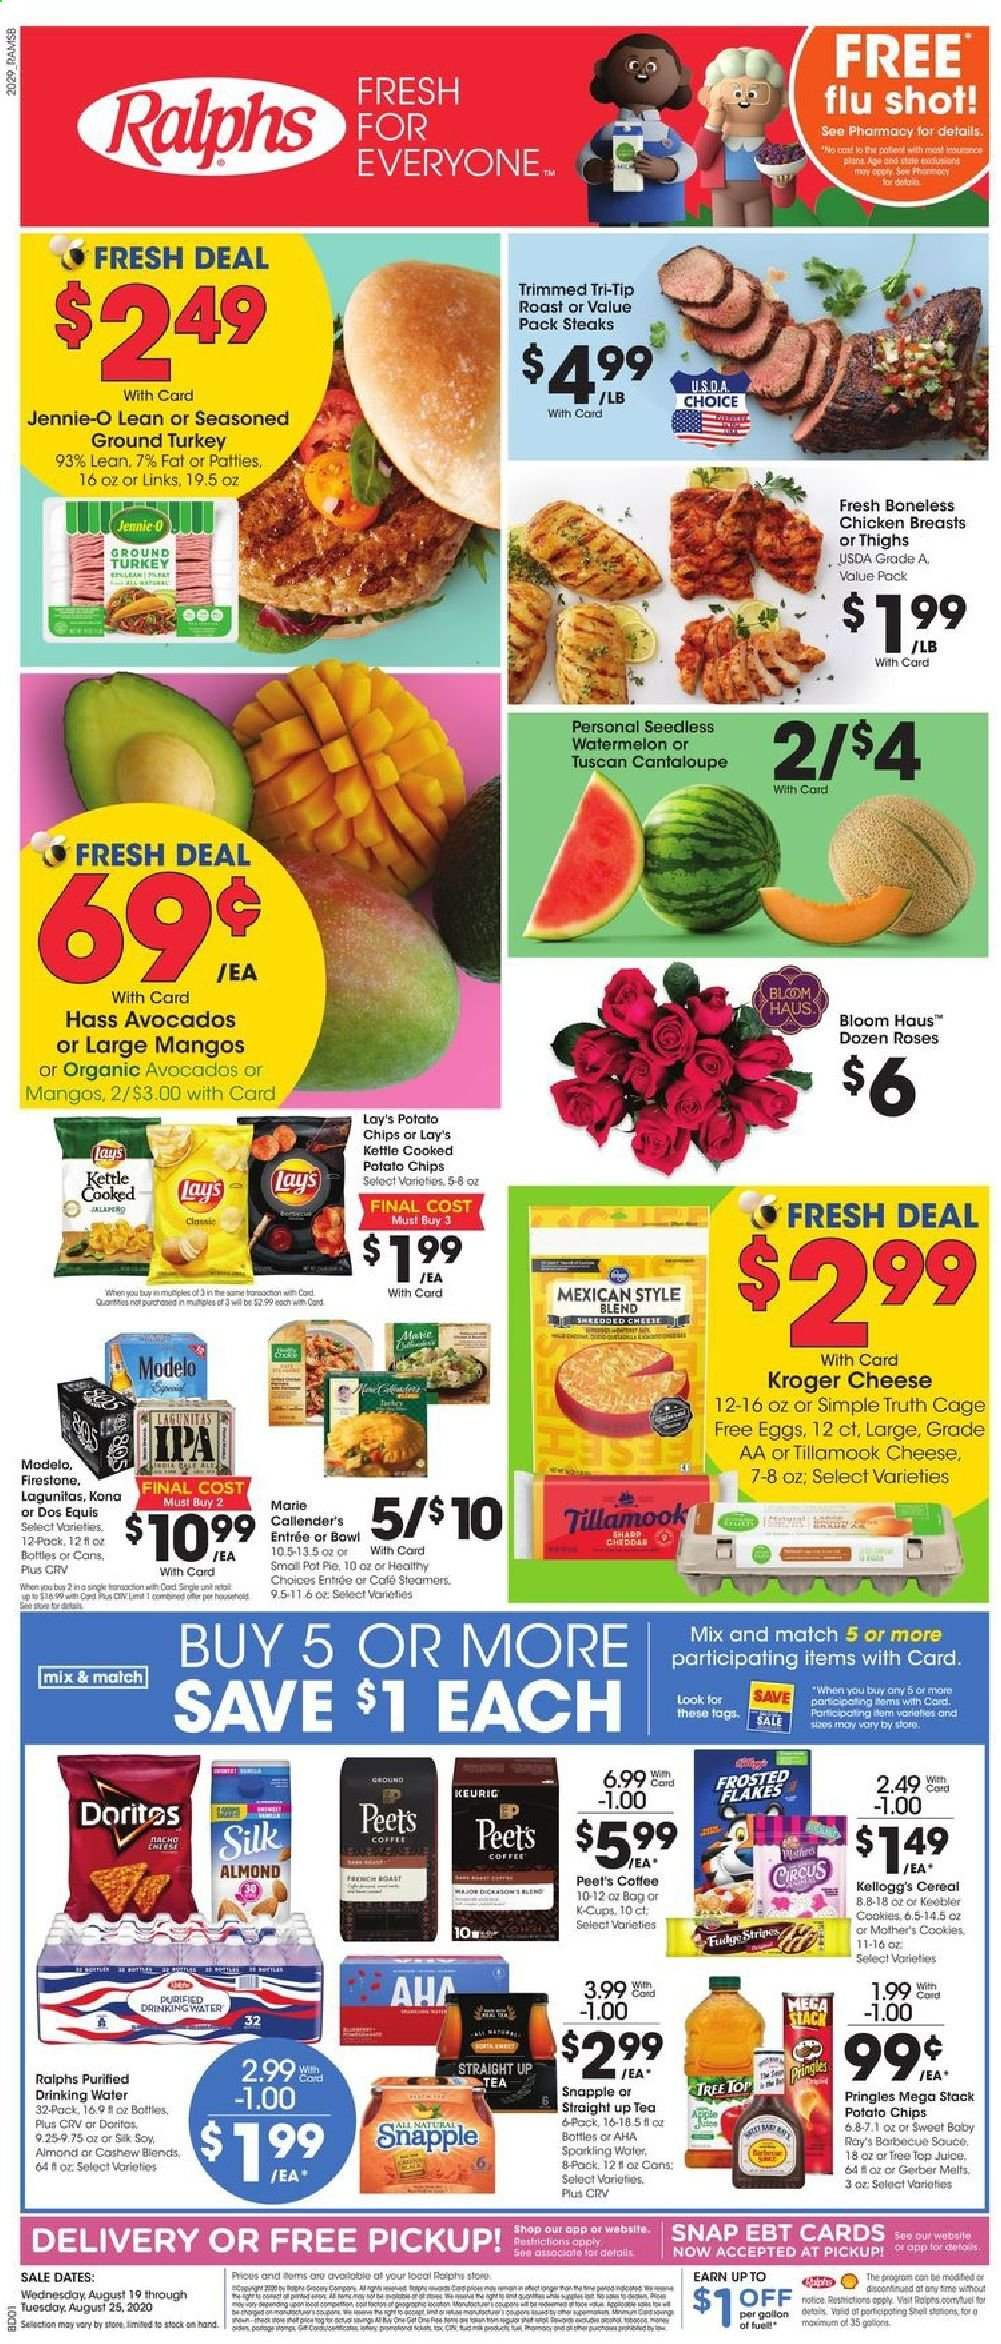 Ralphs Flyer - 08.19.2020 - 08.25.2020 - Sales products - avocado, cantaloupe, cereals, coffee, cookies, dates, doritos, eggs, firestone, fuel, gerber, ground turkey, mango, tea, tree, turkey, watermelon, pot, pot pies, potato chips, pringles, chicken, chicken breast, organic, chips, drinking water, cheese, juice, pie, roses, cereal, lay's, flakes, dos equis, roast, chicken breasts, barbecue, kettle. Page 1.